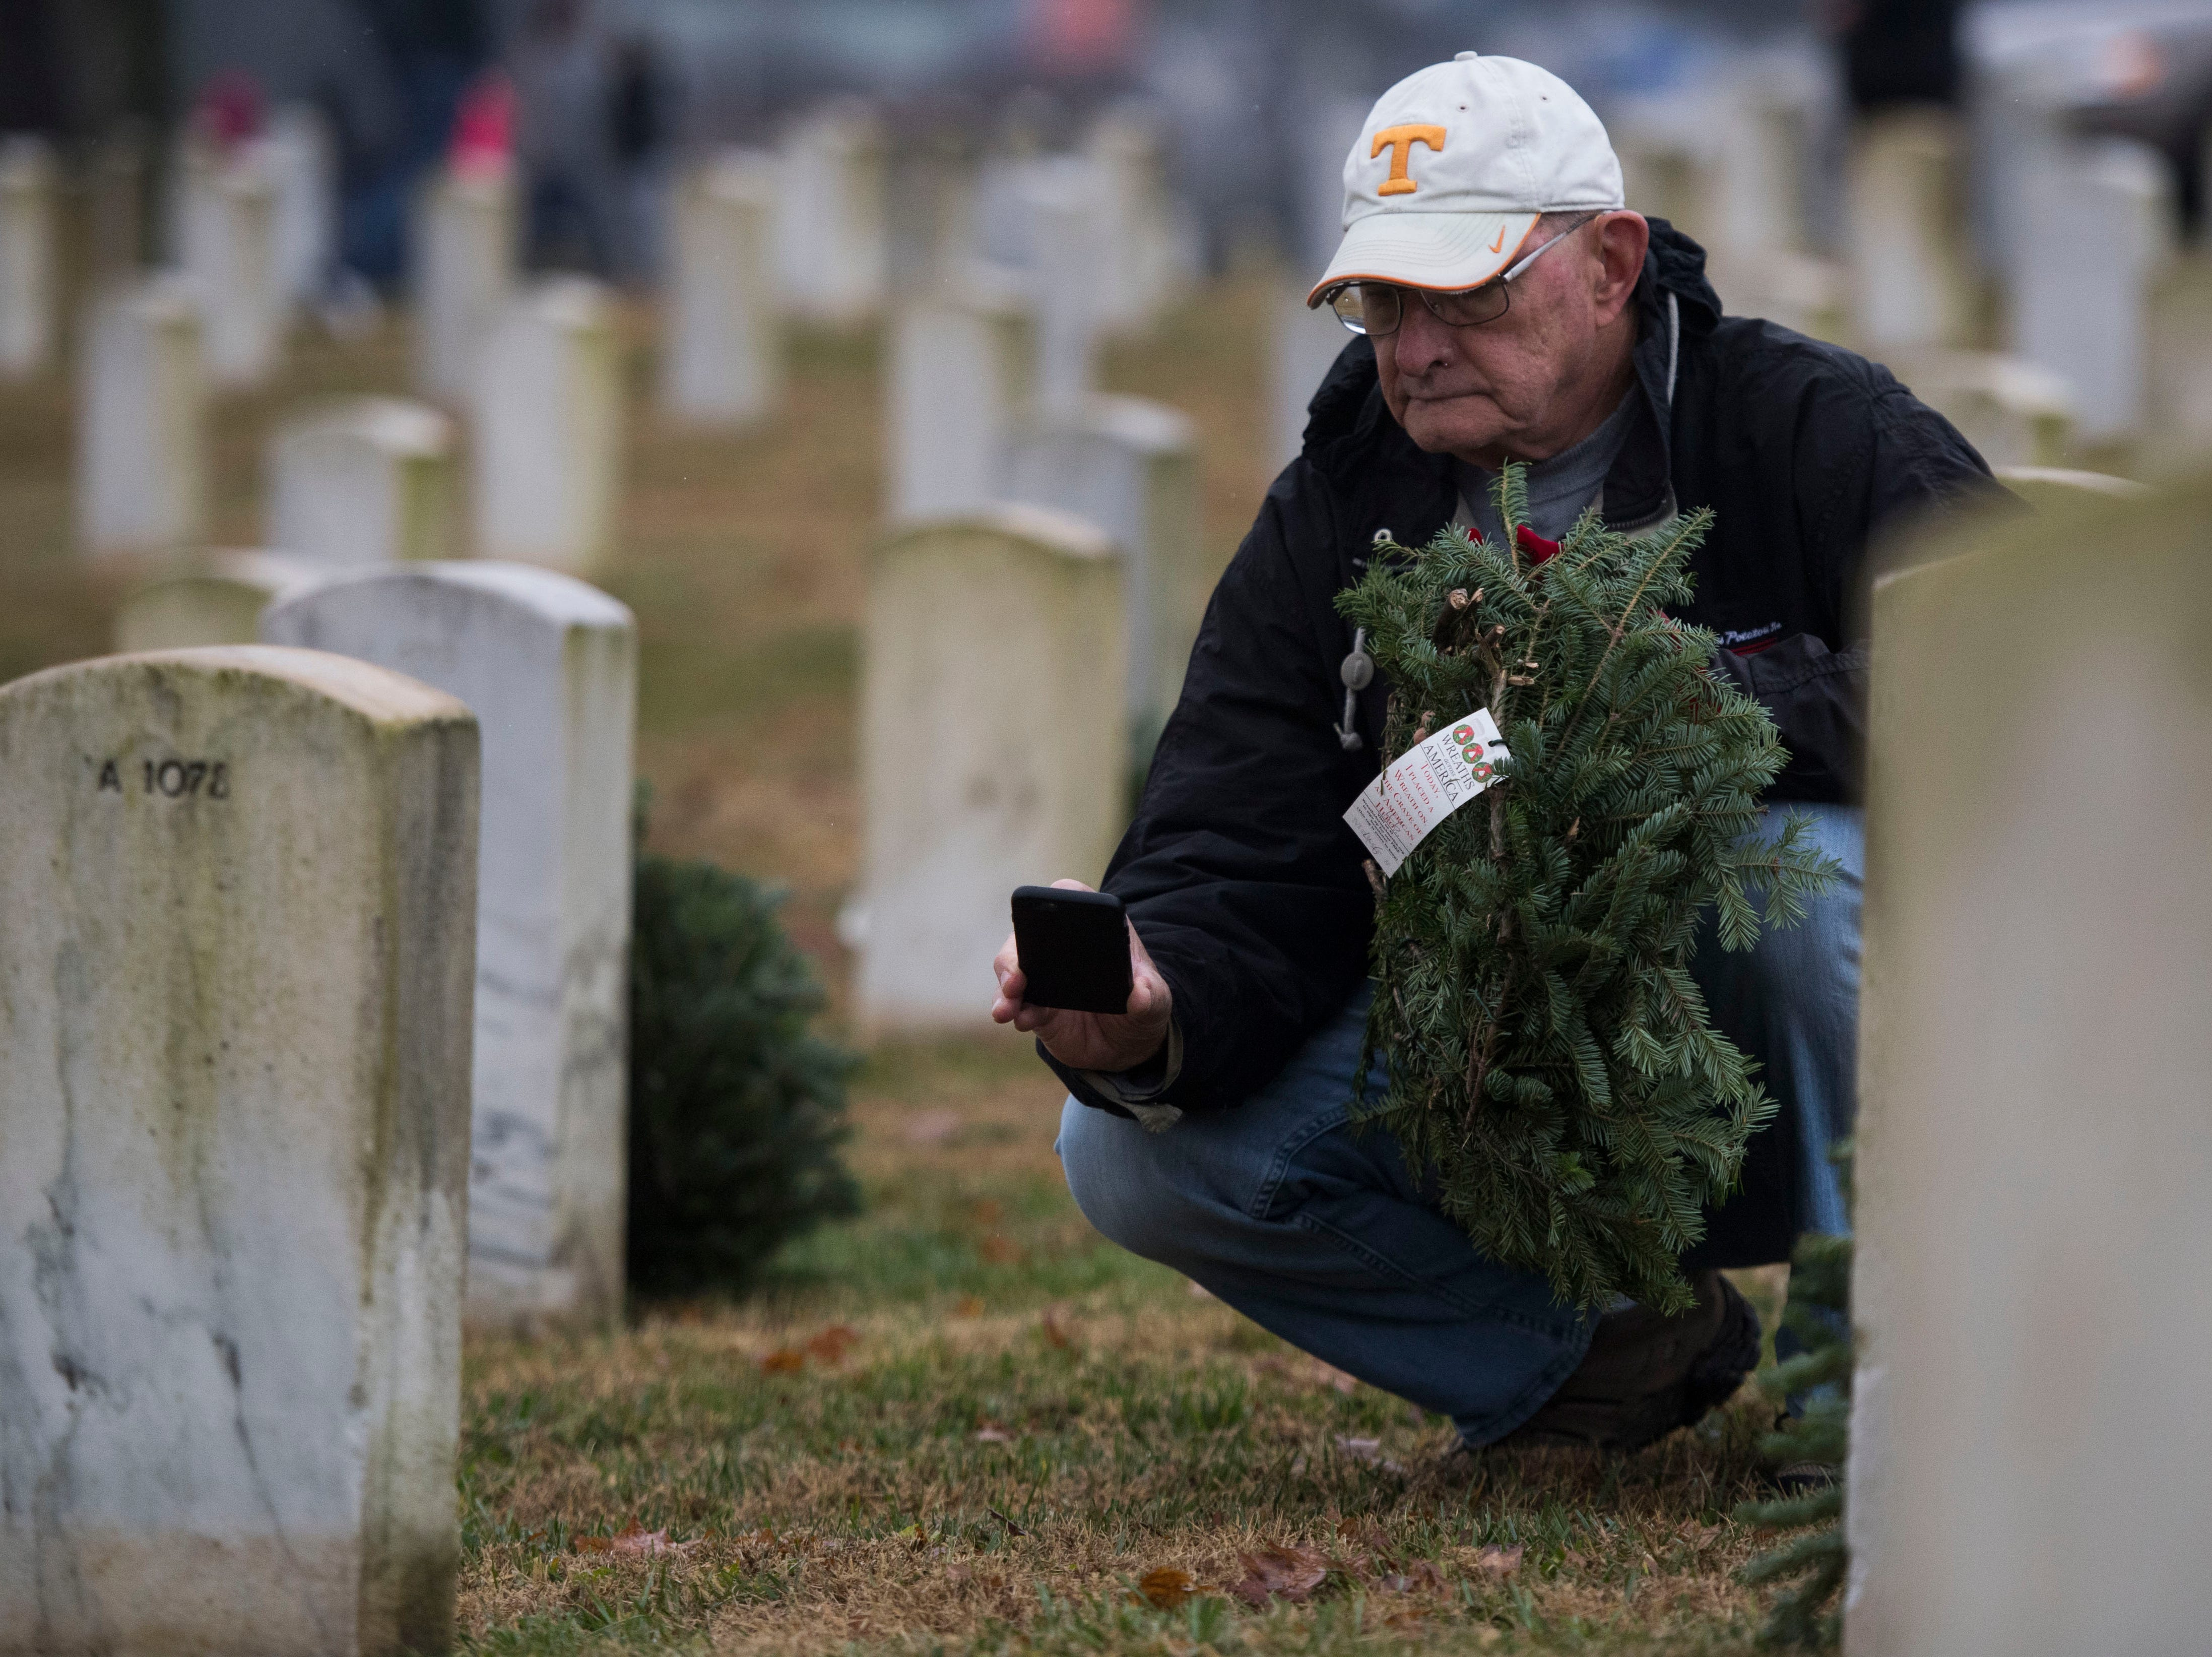 Dennis Flynn of Crossville looks at a grave before placing a wreath on it during a Wreaths Across America ceremony at Knoxville National Cemetery north of downtown Knoxville Saturday, Dec. 15, 2018.